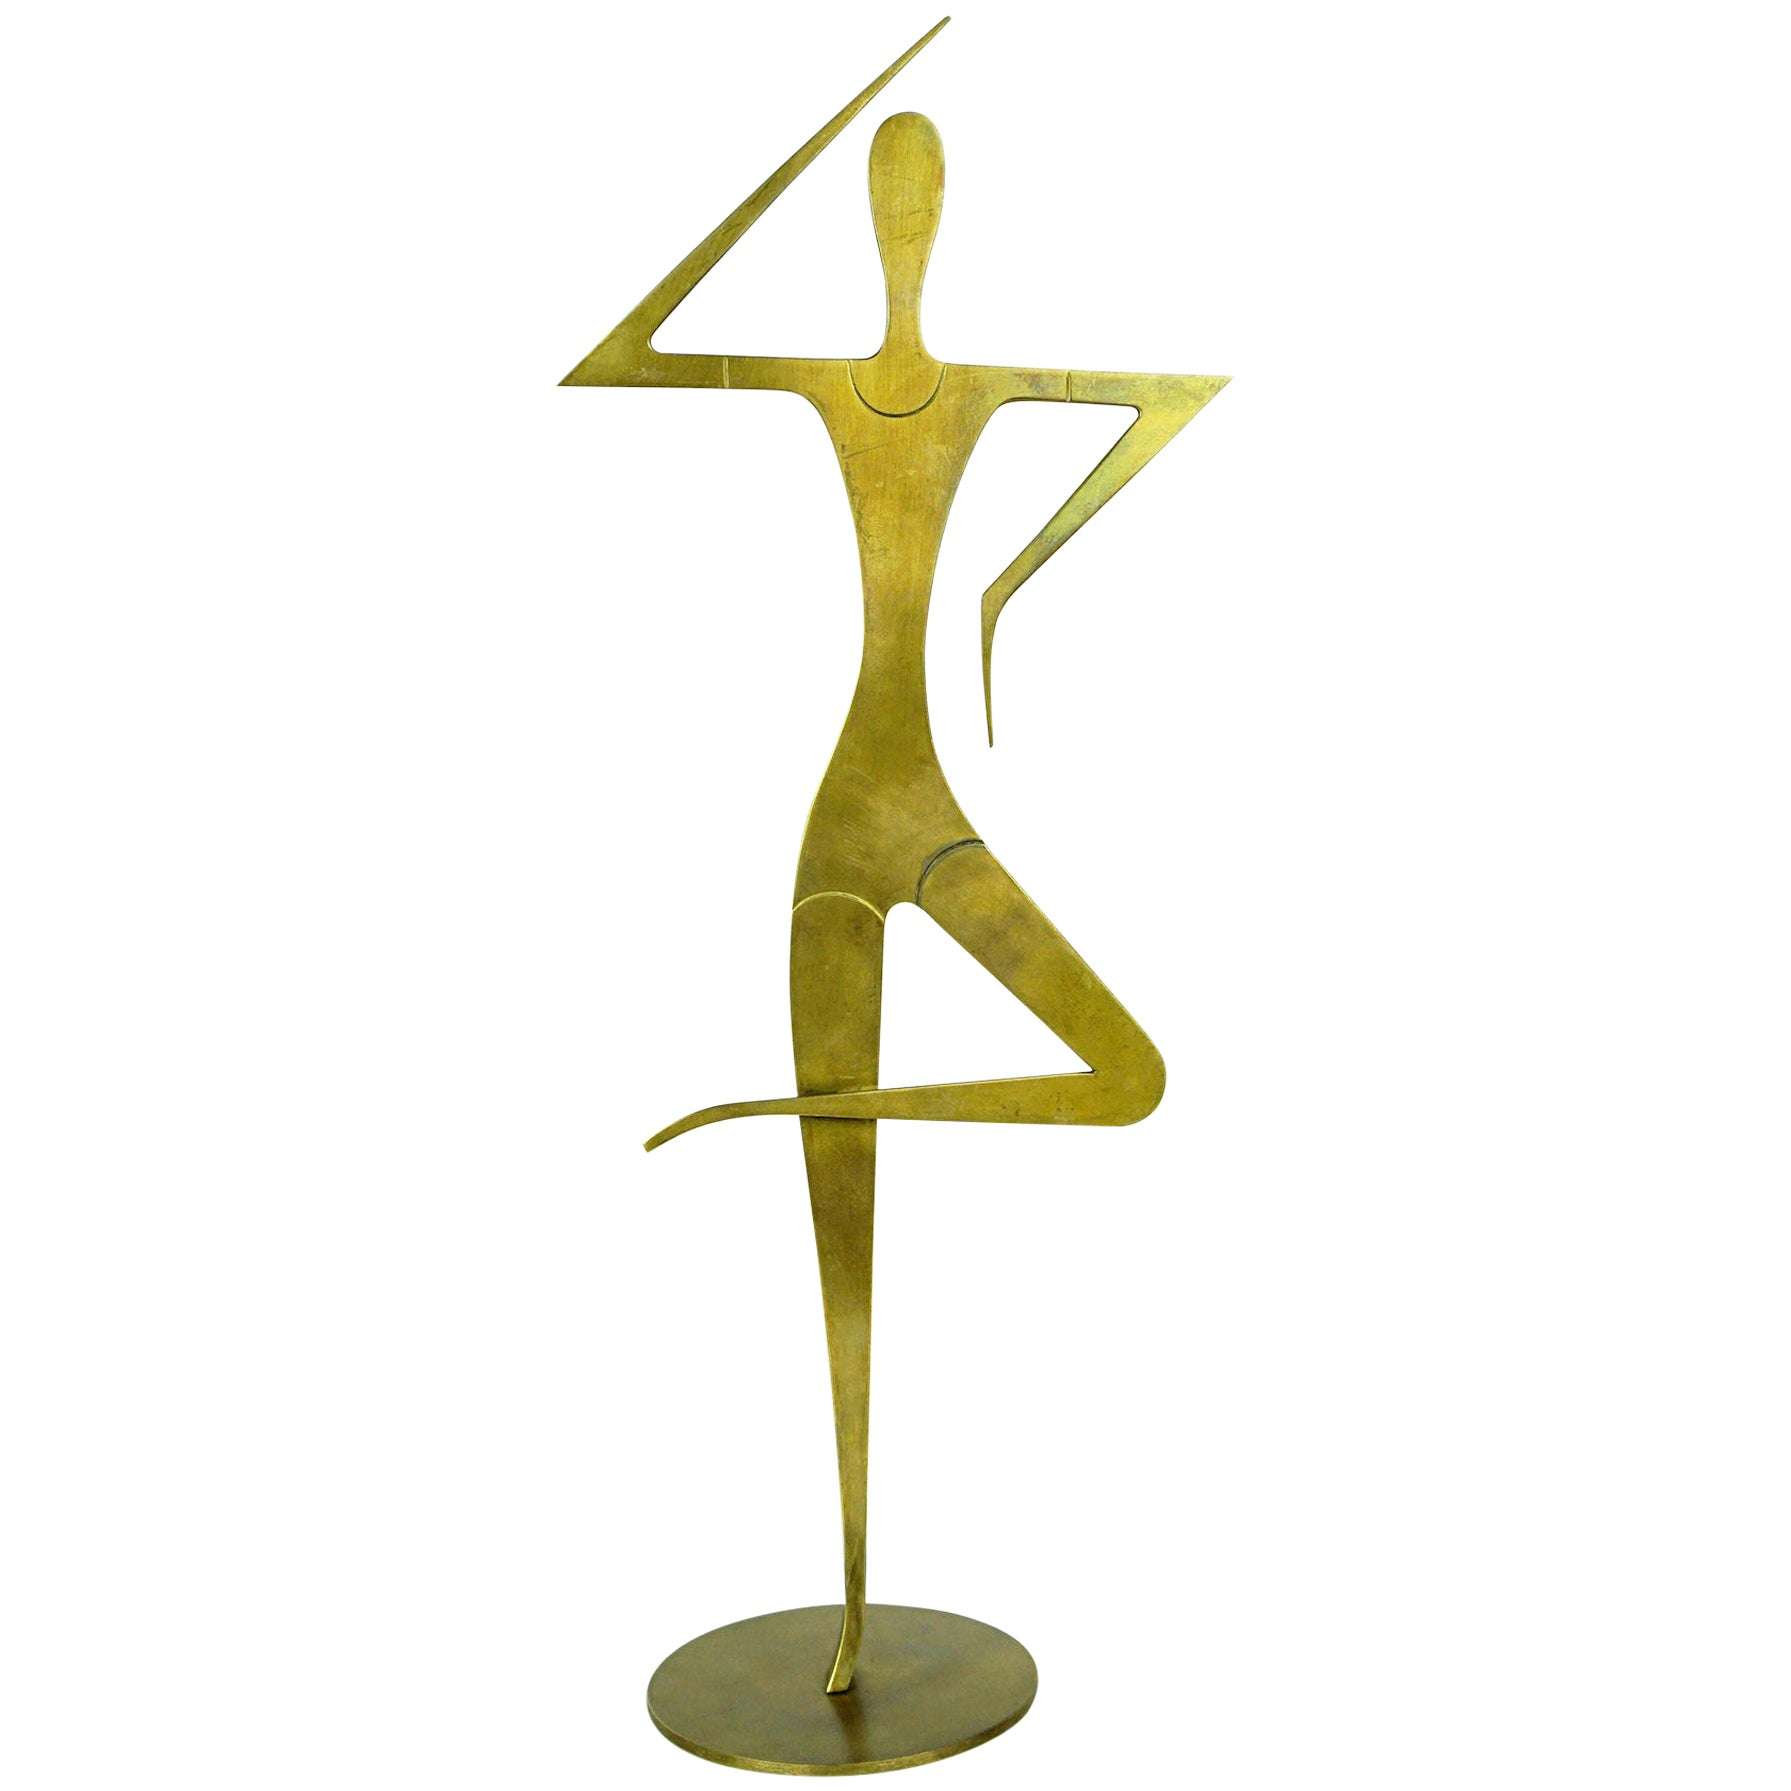 Austrian Midcentury Brass Female Gymnast Sculpture by Franz Hagenauer